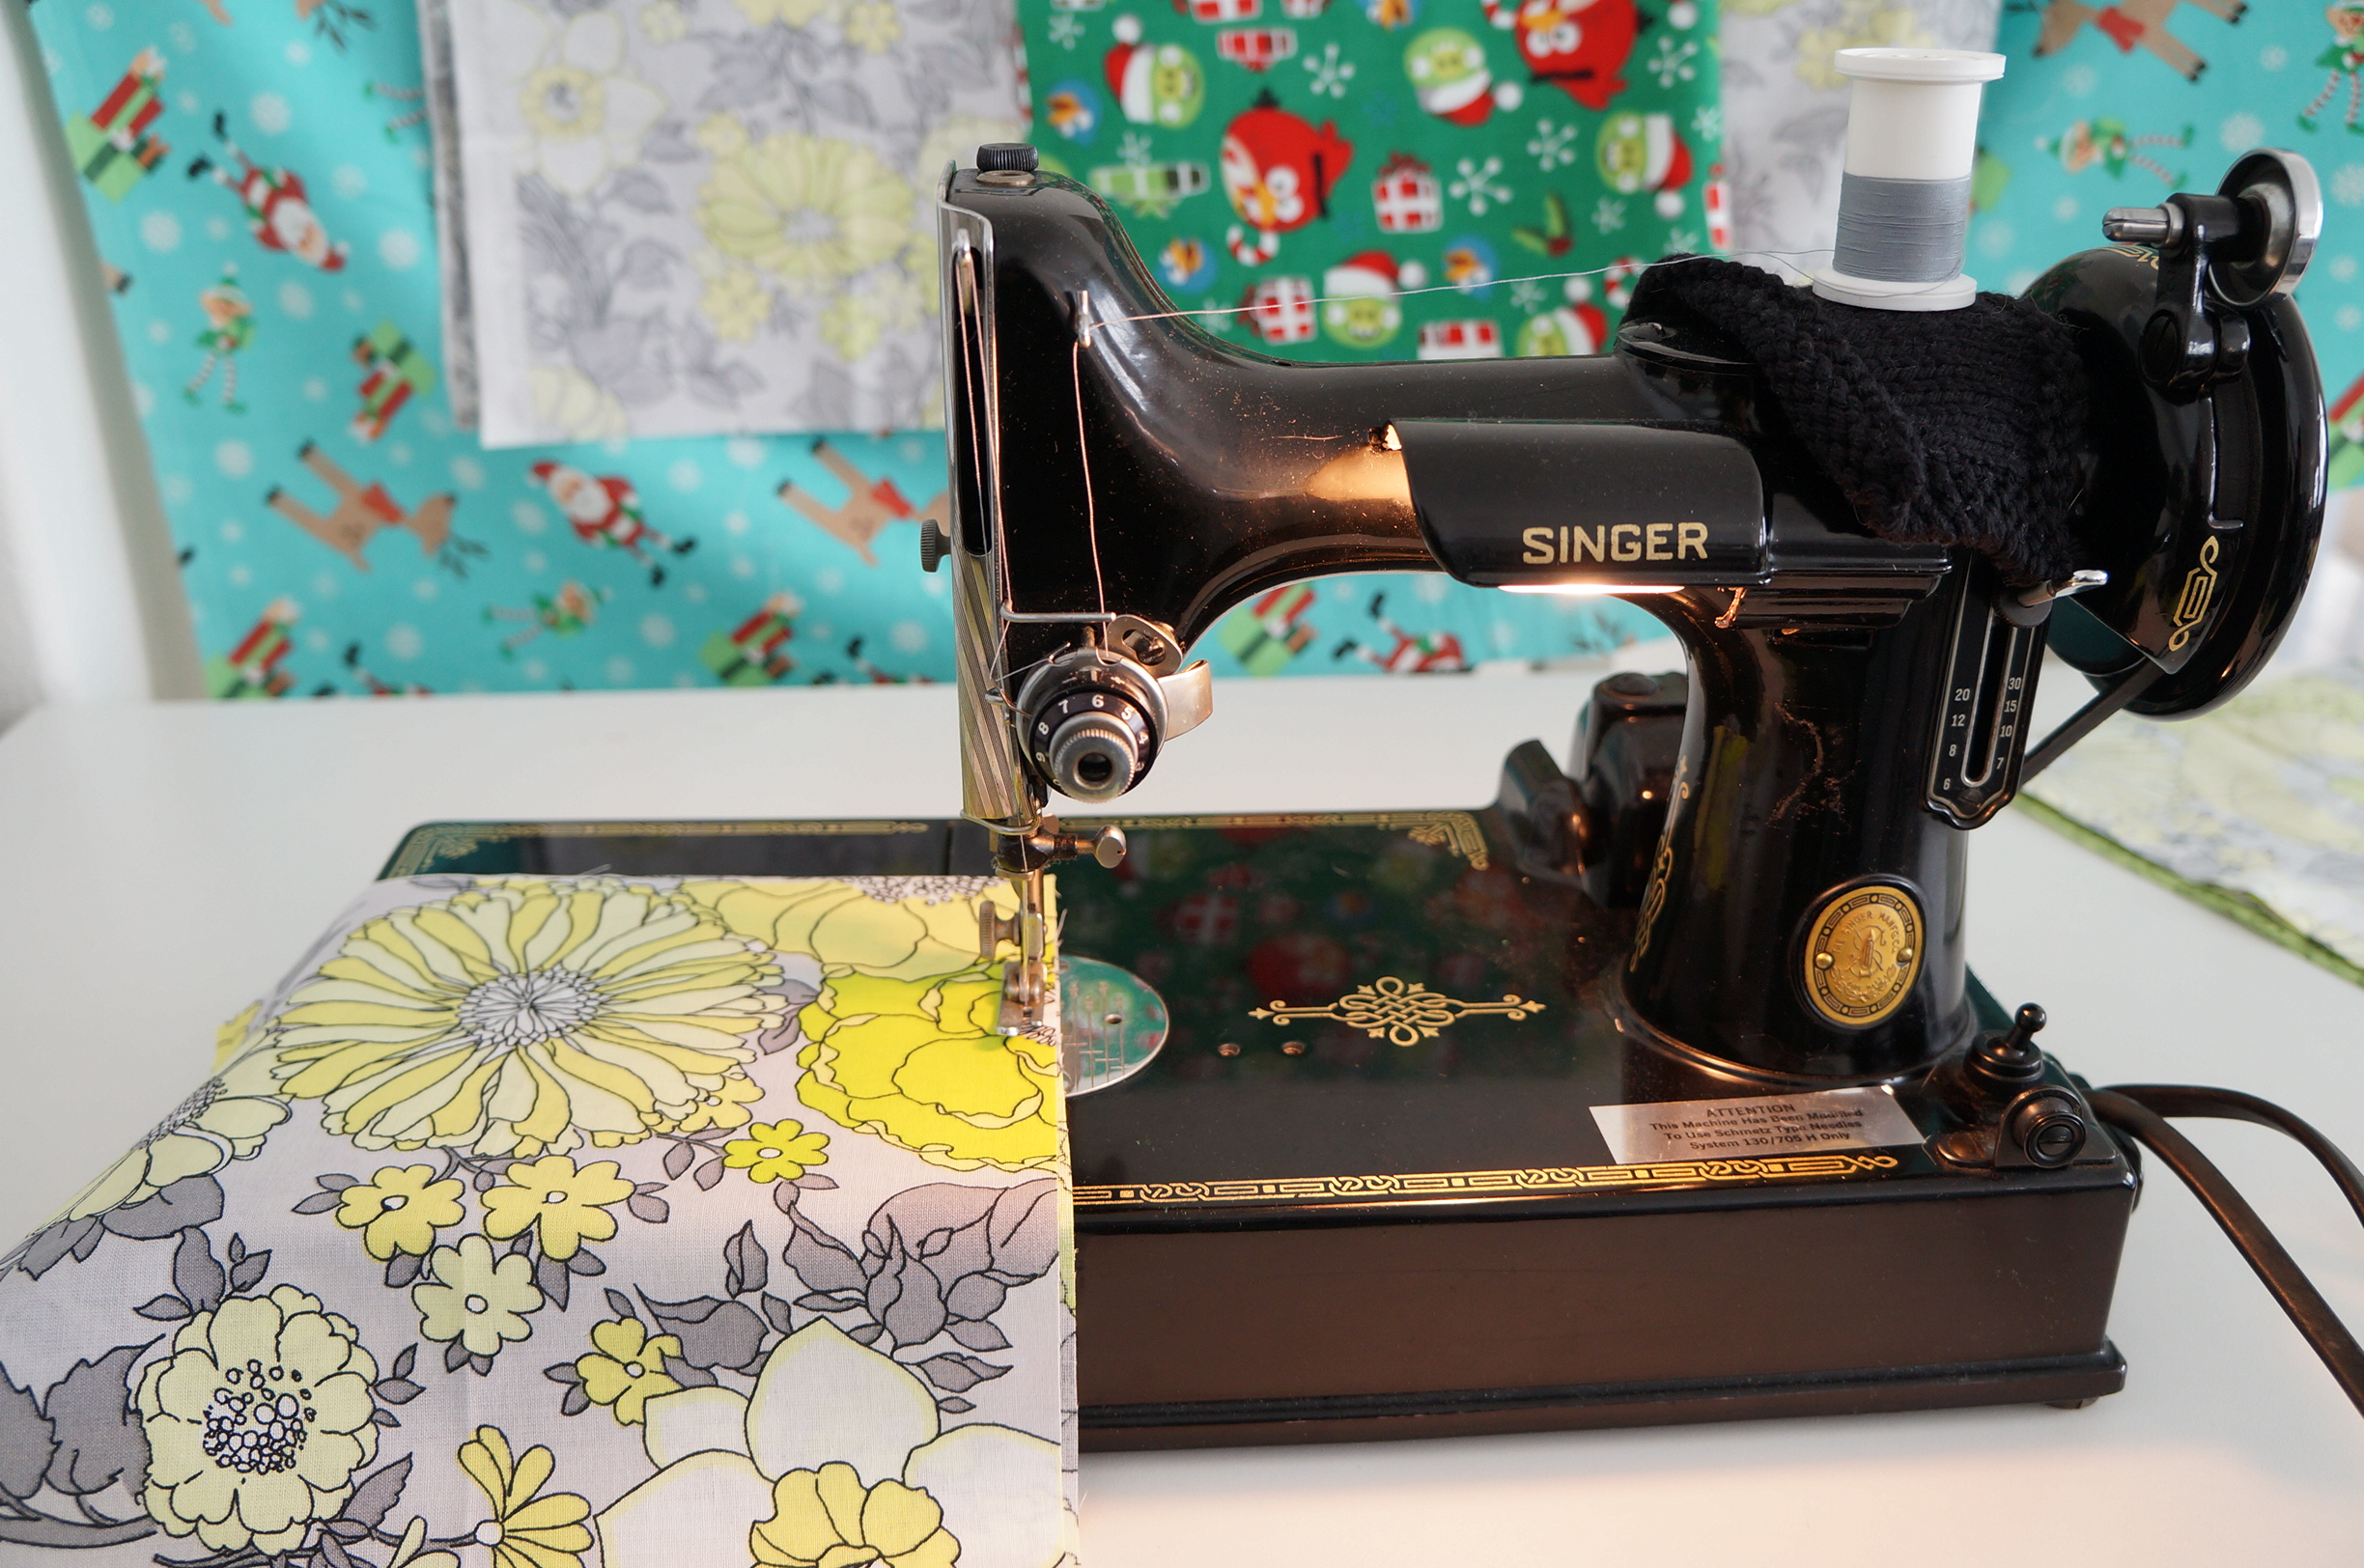 Sewing project bags on my Singer Featherweight 221.